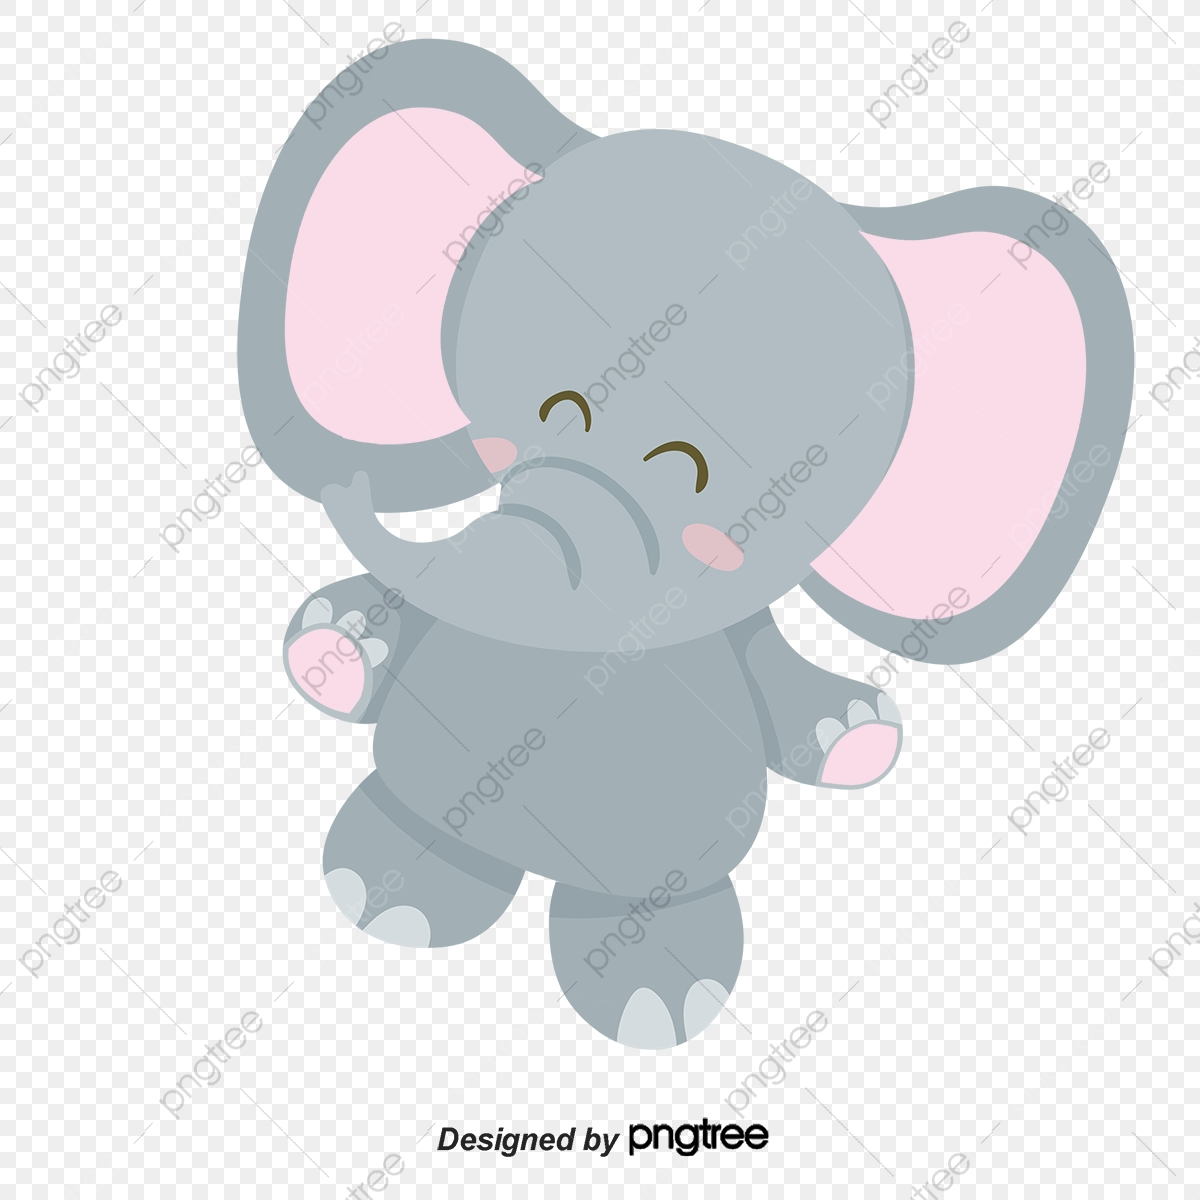 Run Running Elephant Elephant Elephant Running Elephant Clipart Cartoon Elephant Gray Png Transparent Clipart Image And Psd File For Free Download Large png 2400px small png 300px. https pngtree com freepng run running elephant elephant elephant running 3932566 html